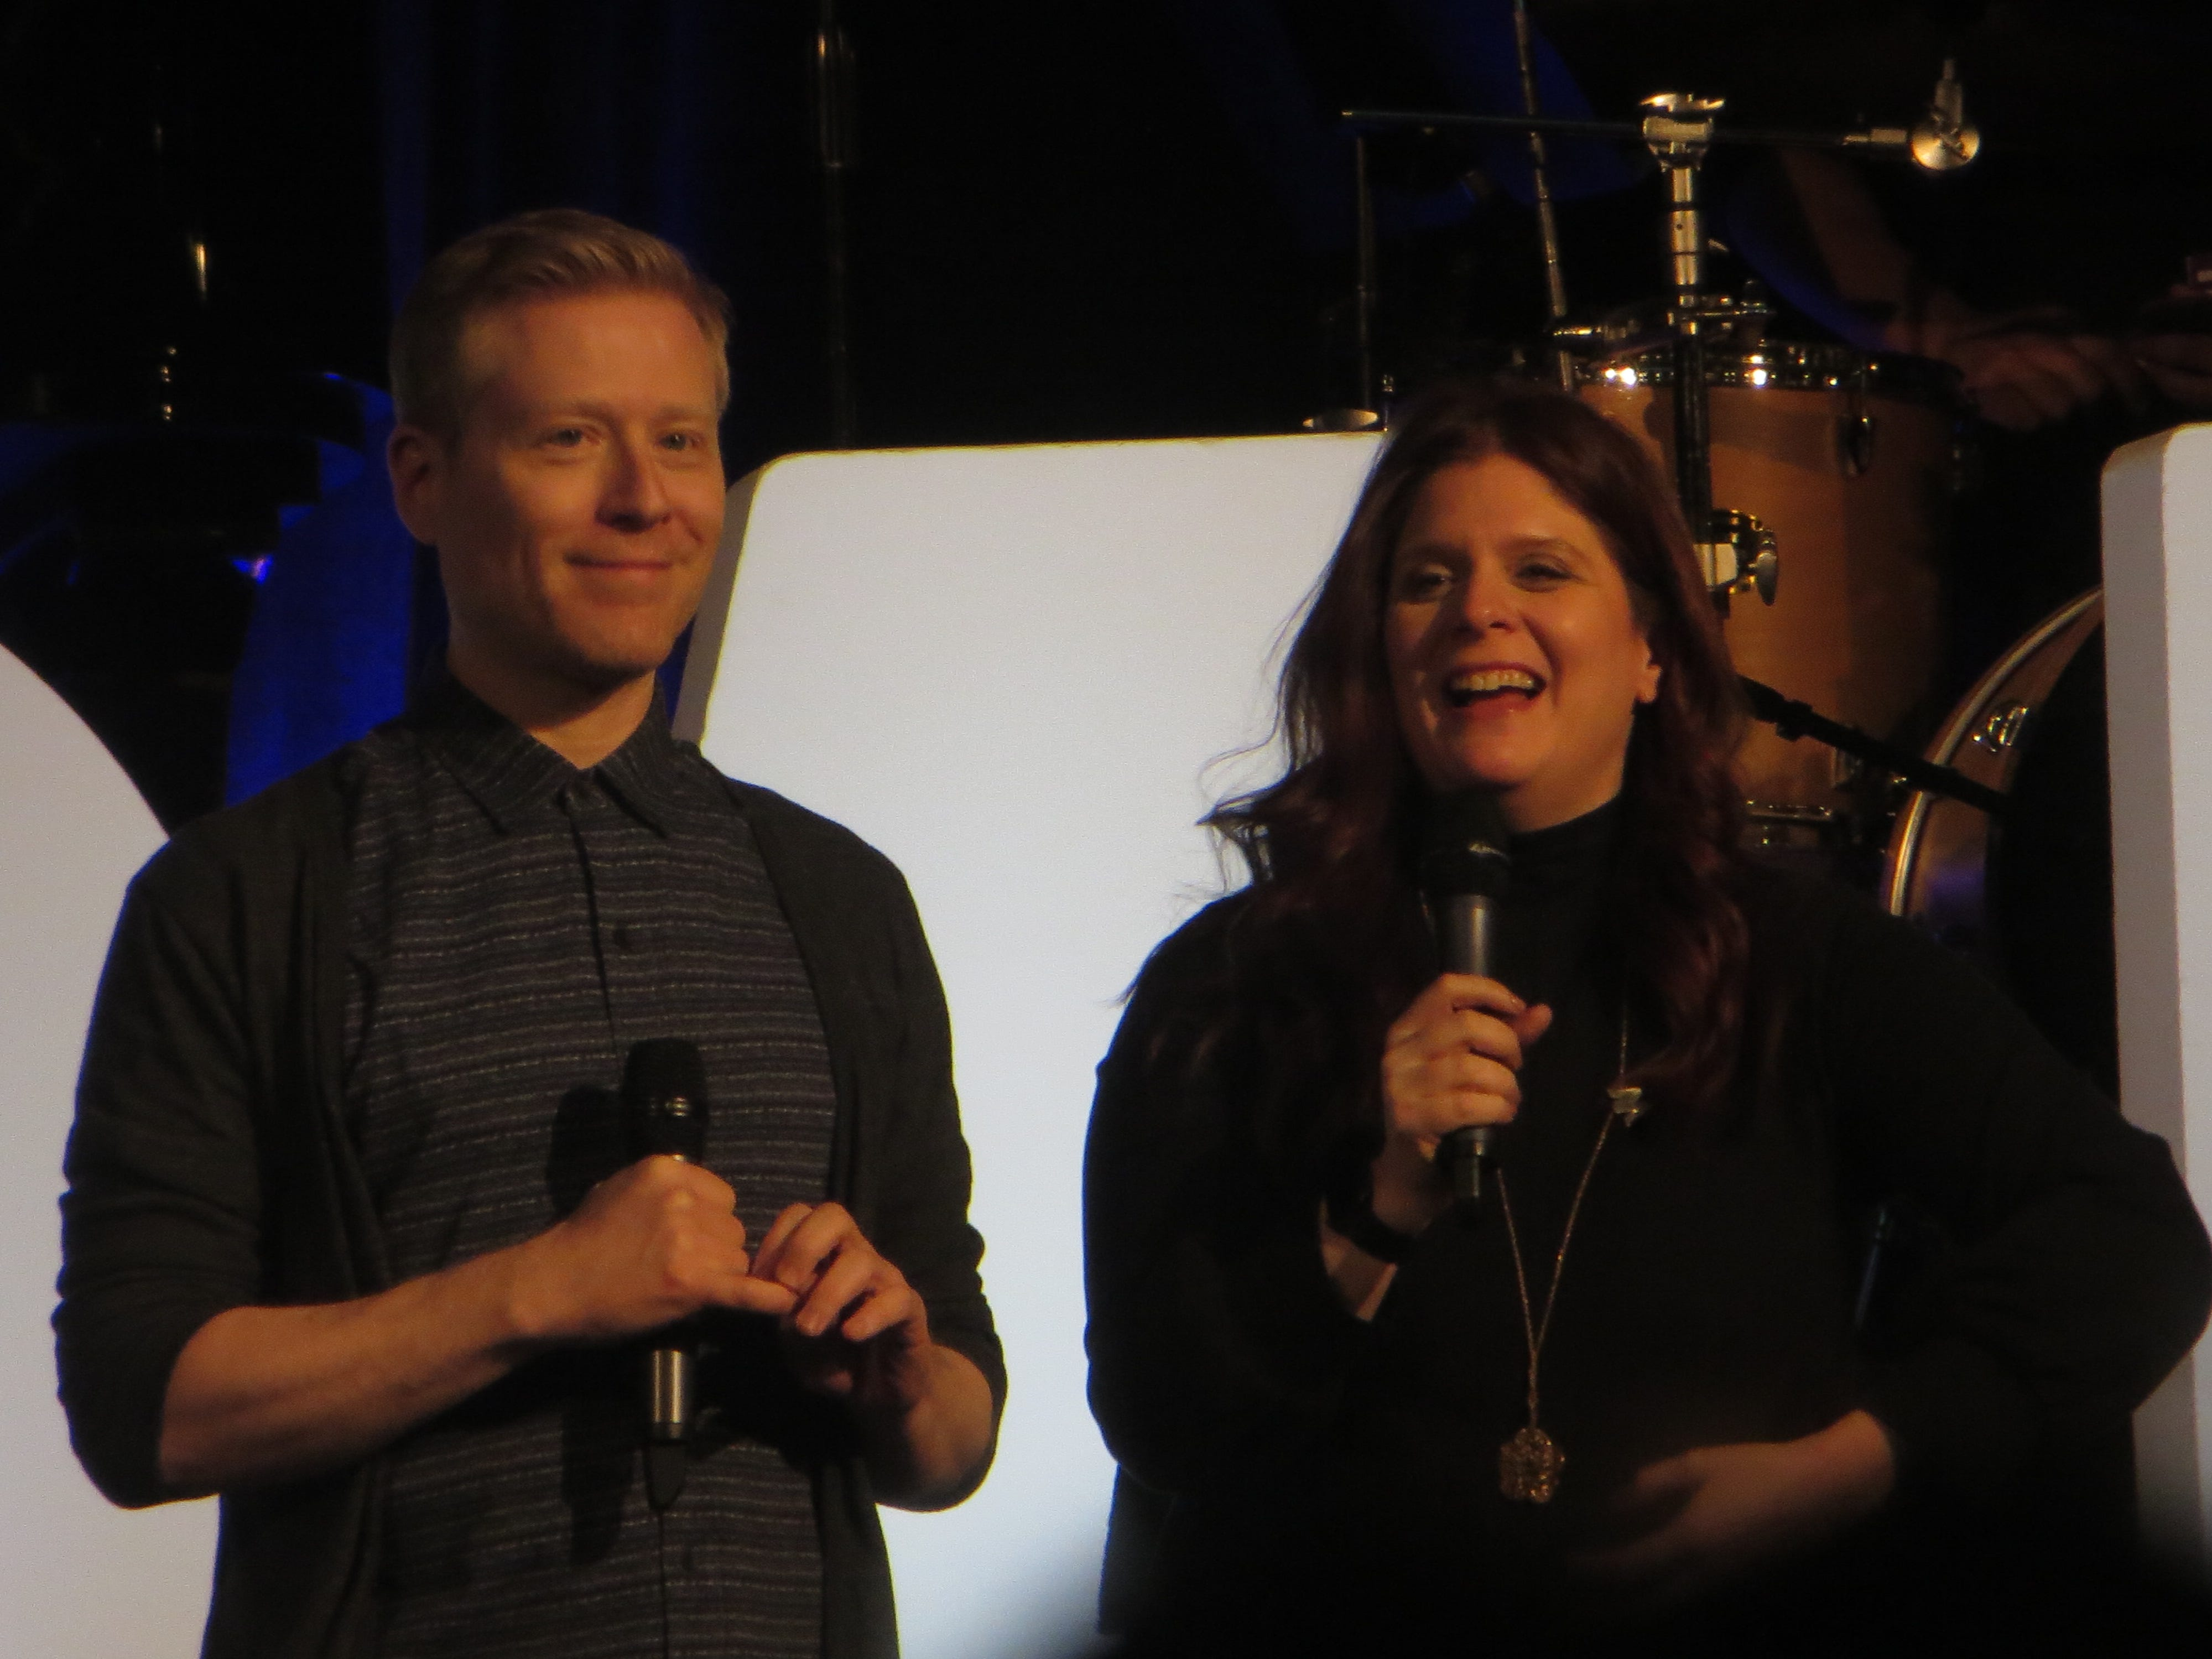 Co-founders Anthony Rapp and Melissa Anelli at BroadwayCon 2019, held Jan. 11 to 13, 2019, at the New York Hilton Midtown in Manhattan.